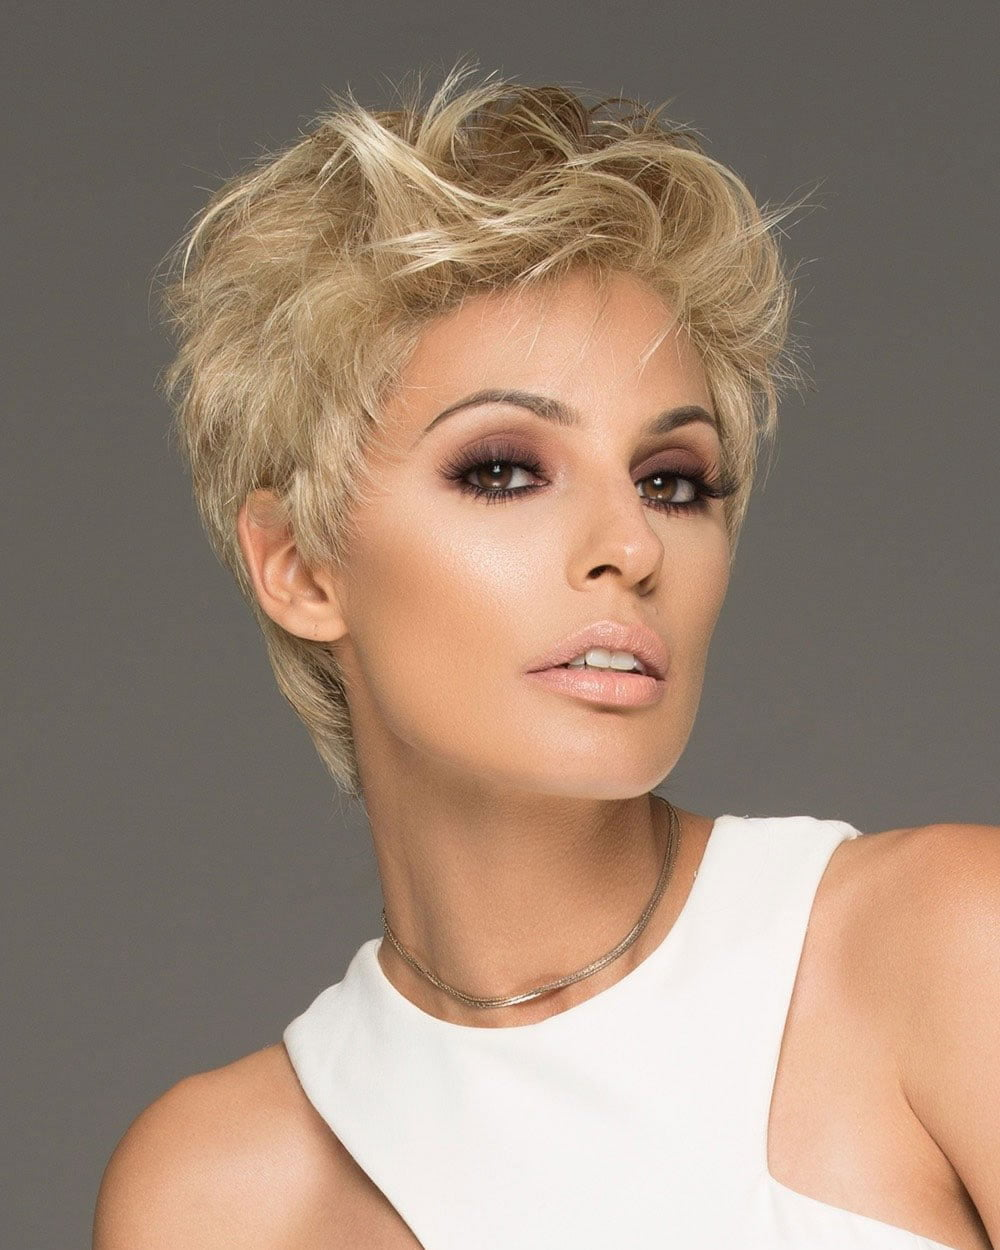 25 Ultra Short Hairstyles + Pixie Haircuts & Hair Color